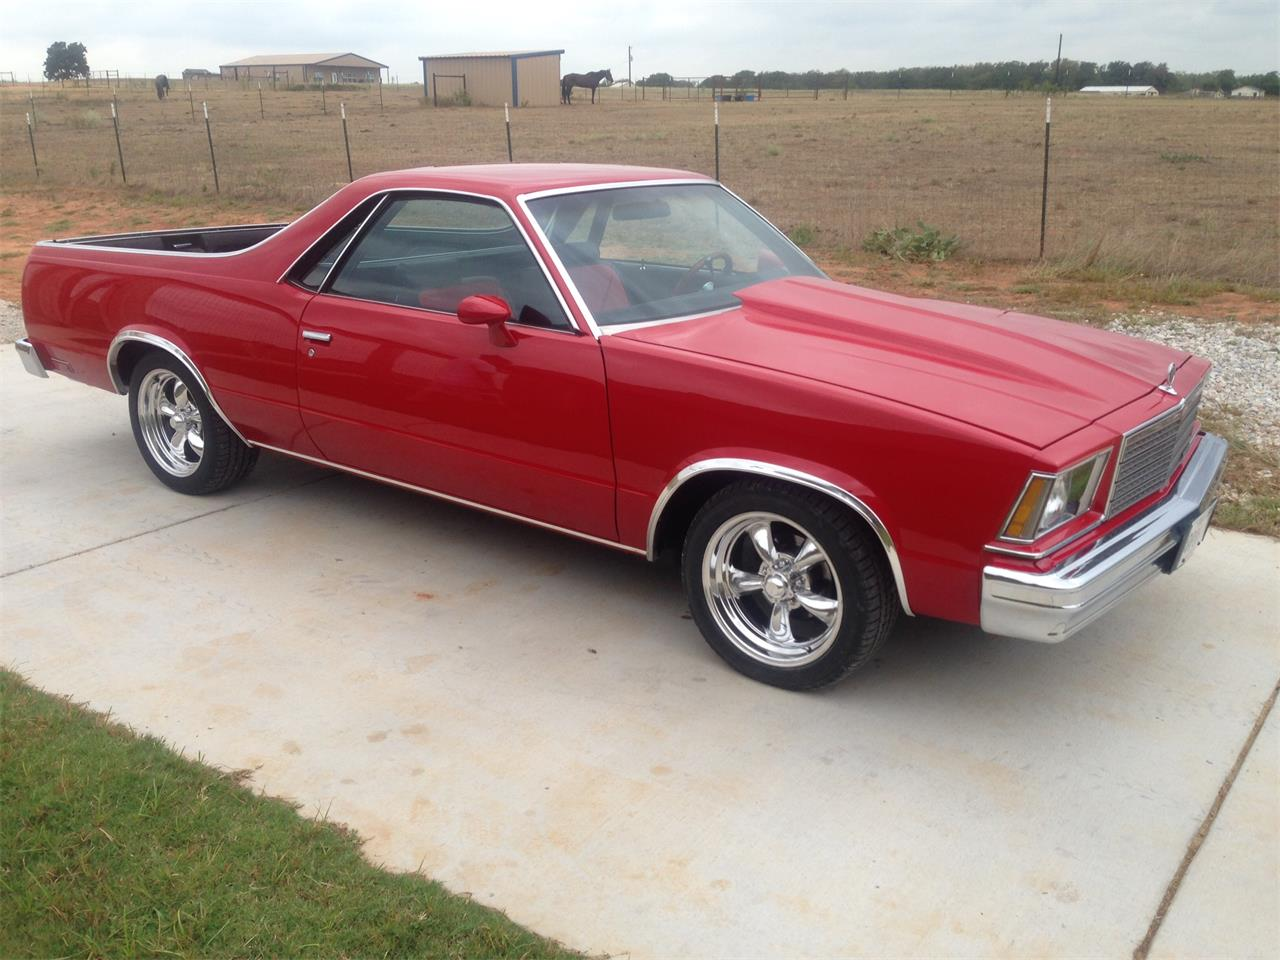 1979 Chevrolet El Camino (CC-1212809) for sale in Springtown, Texas